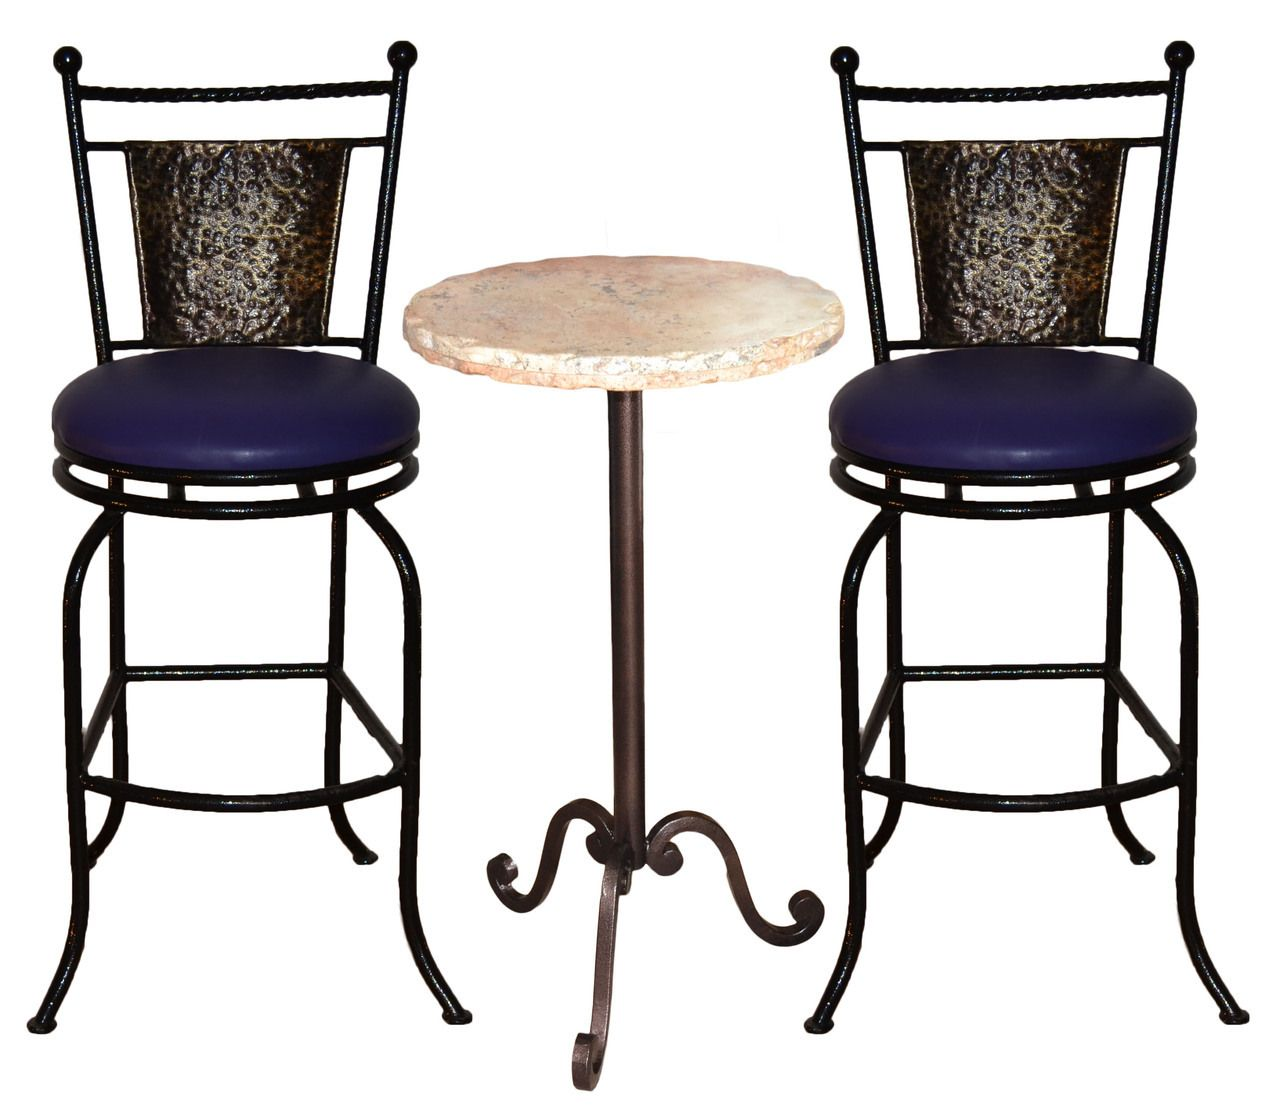 Surfside Patio Fiji Pub Table Set 2 3 Or 4 Person